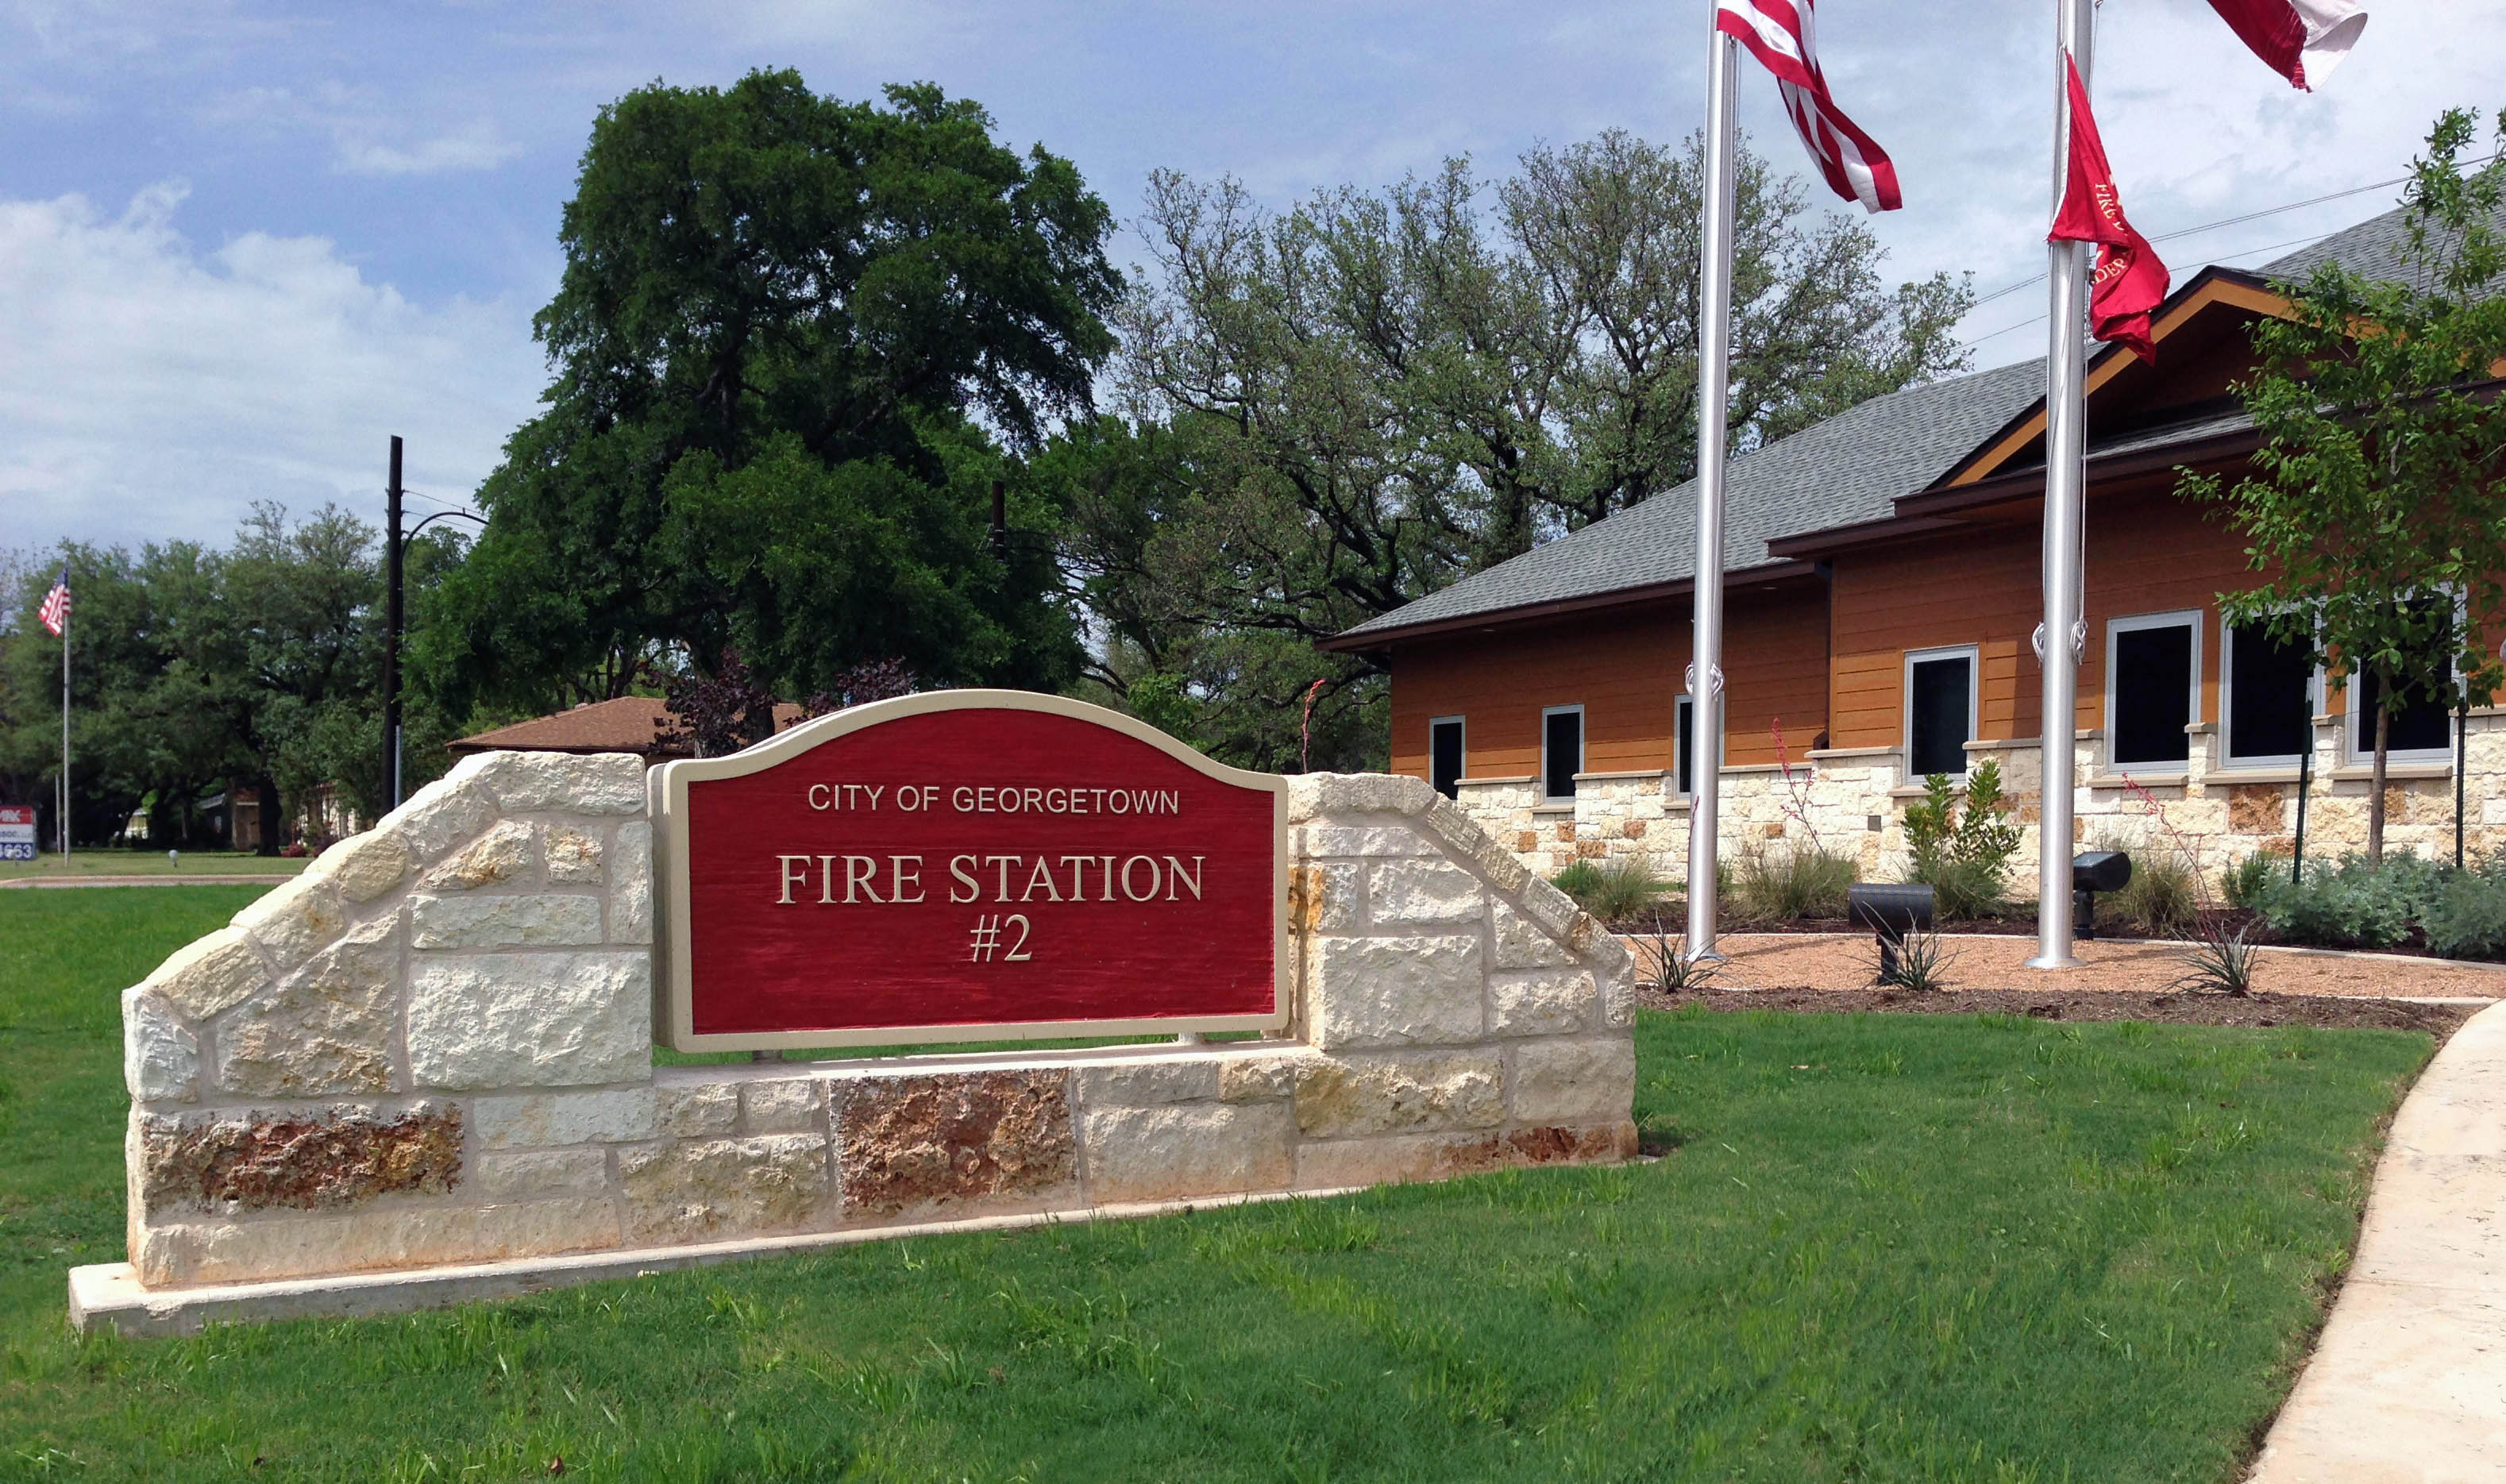 Georgetown Fire Station No. 2